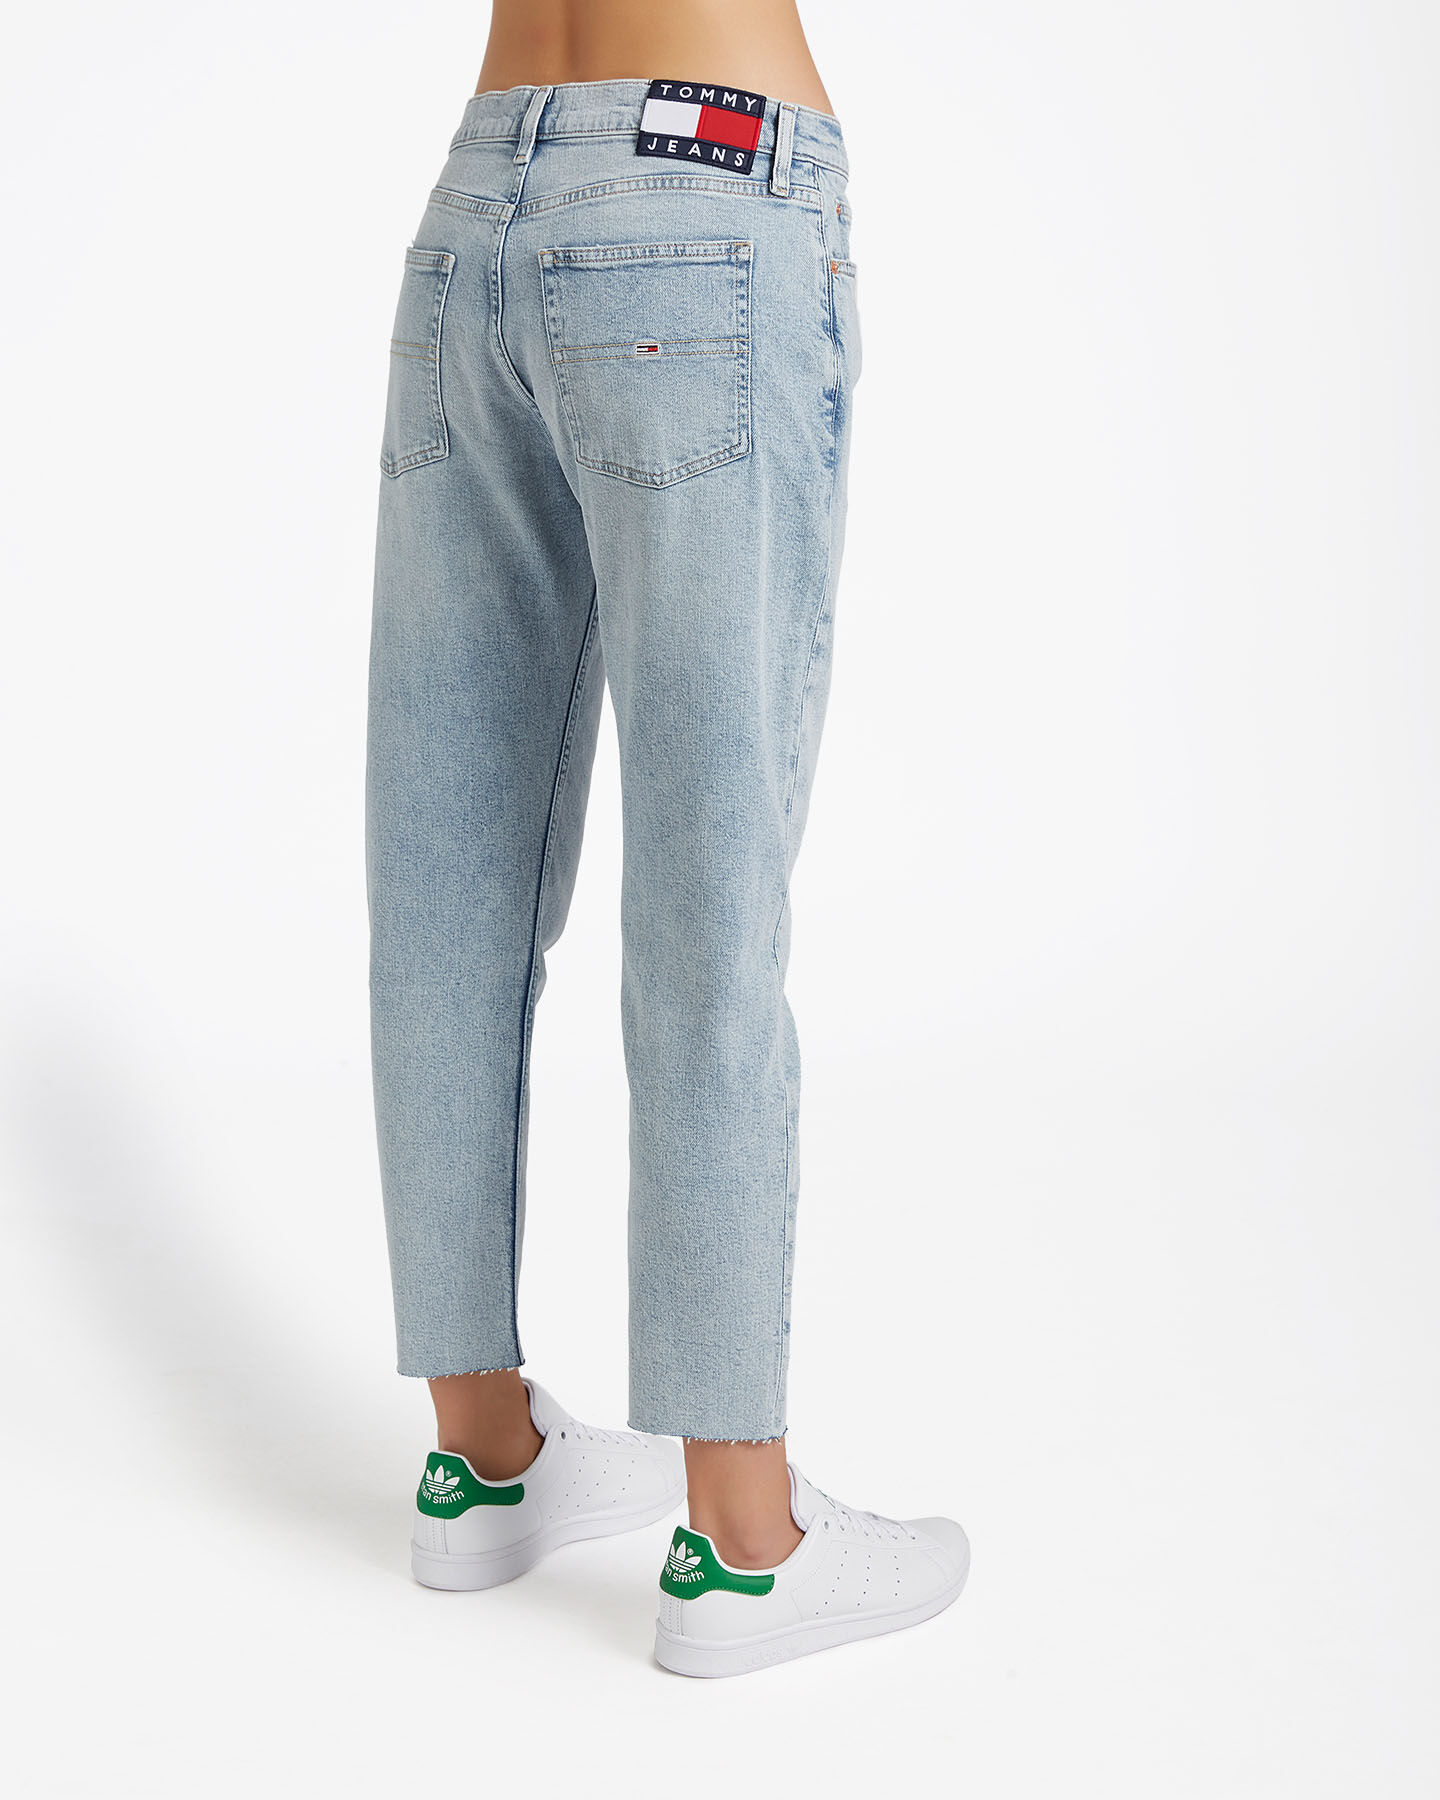 Leggings TOMMY HILFIGER IZZY HIGH RISE SLIM FIT W S4082567 scatto 1